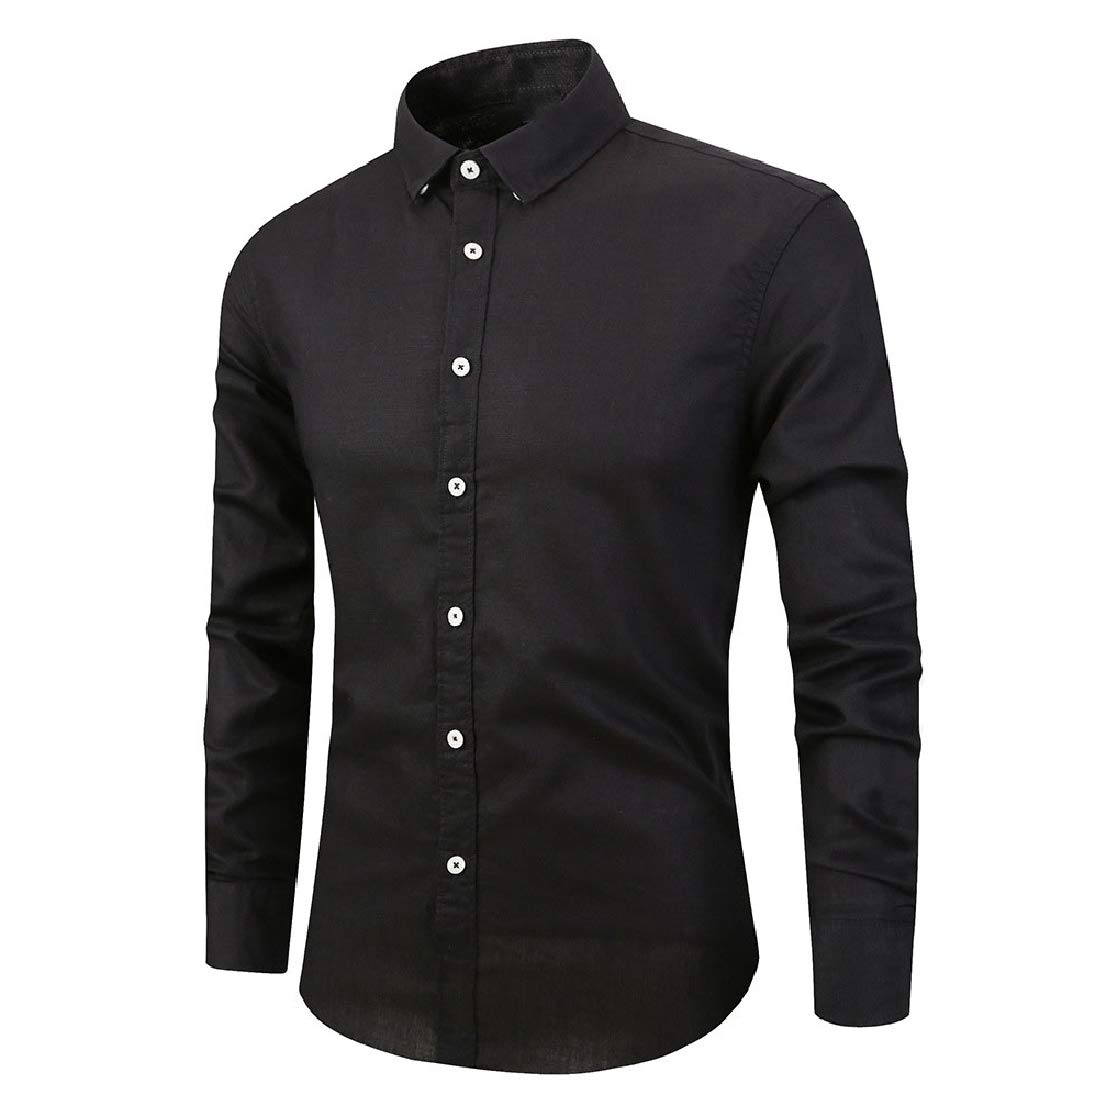 YUNY Mens Fashion Linen Cardi Long Sleeve Square Collor Solid Shirt Black S